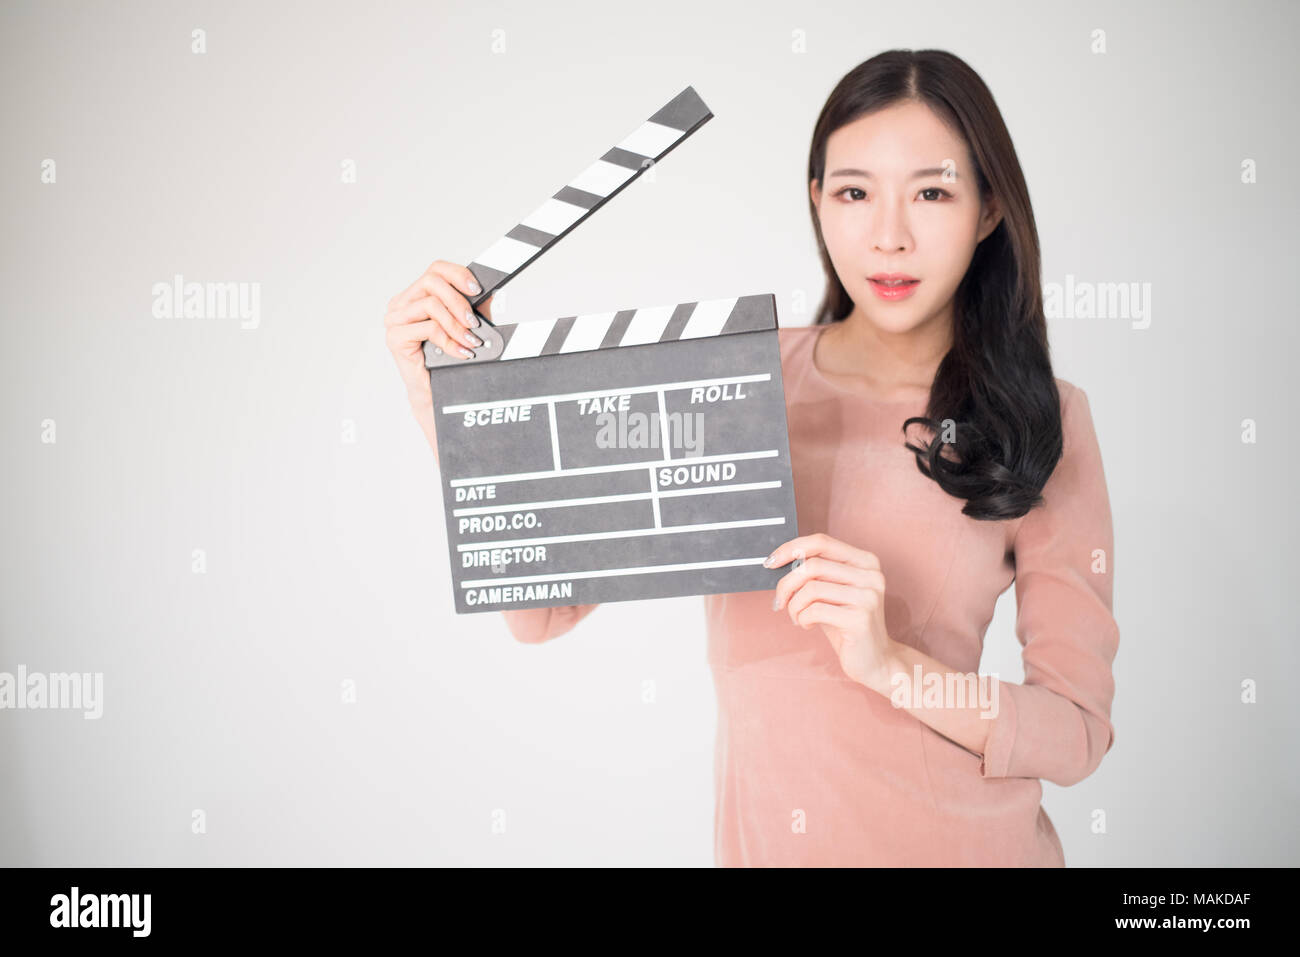 casting director stock photos & casting director stock images - alamy